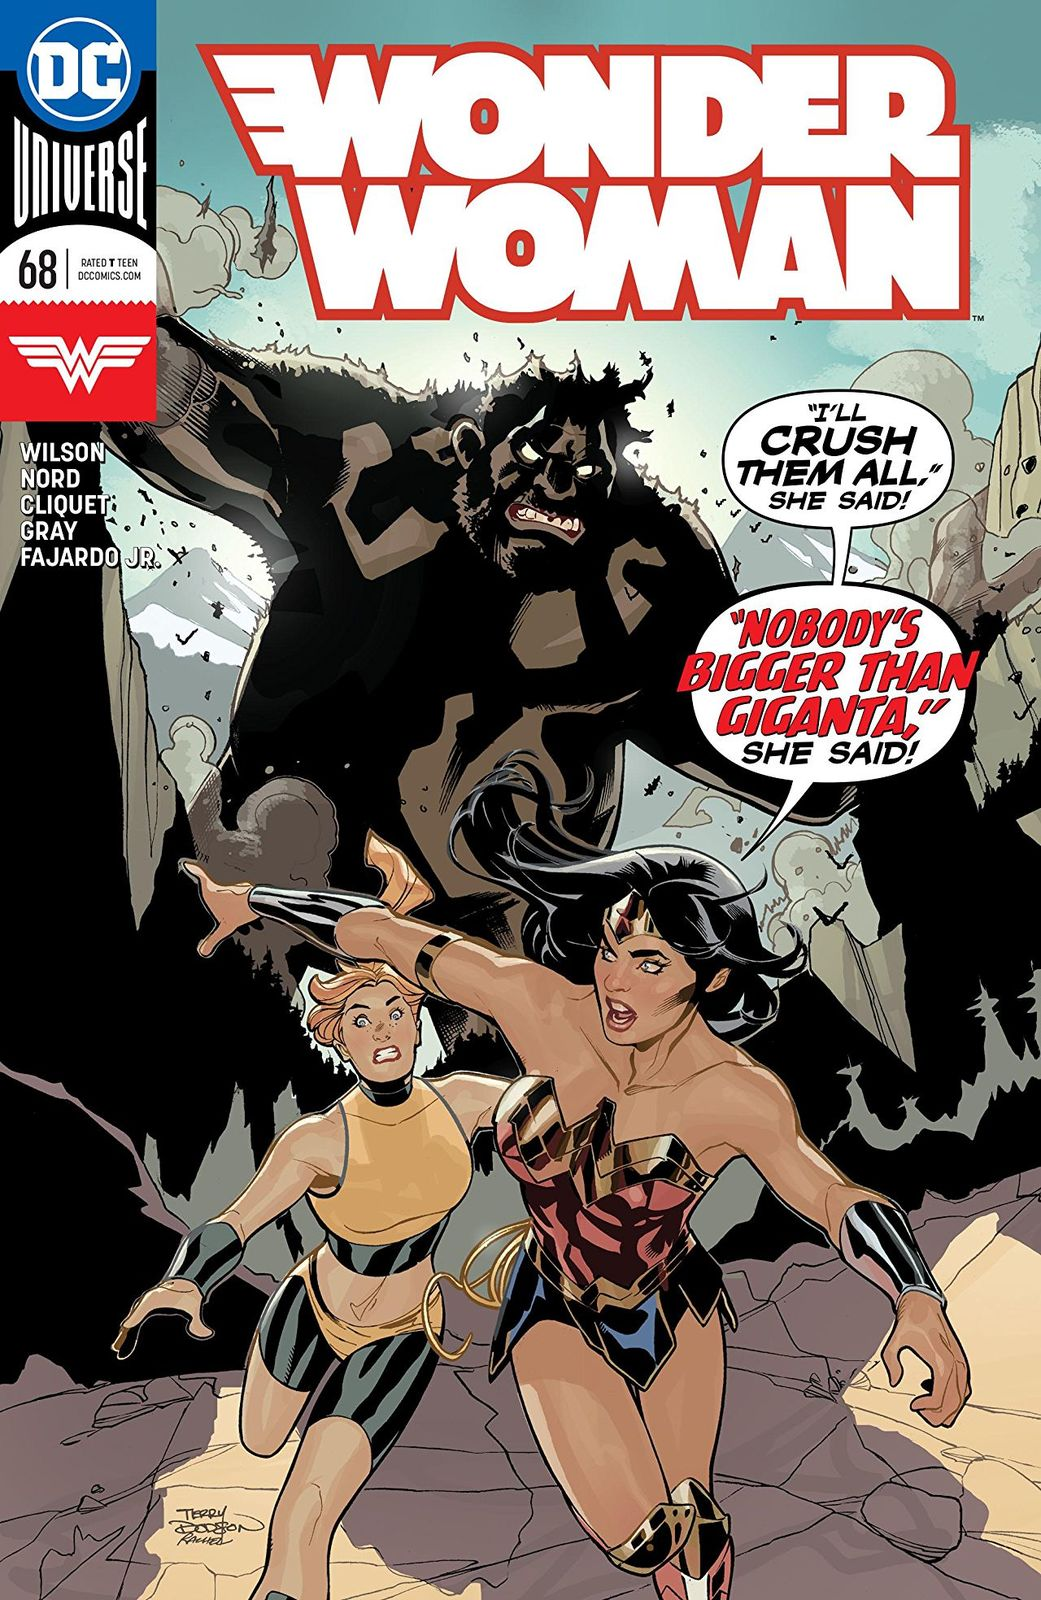 Wonder Woman - #68 (Cover A) by G.Willow Wilson image